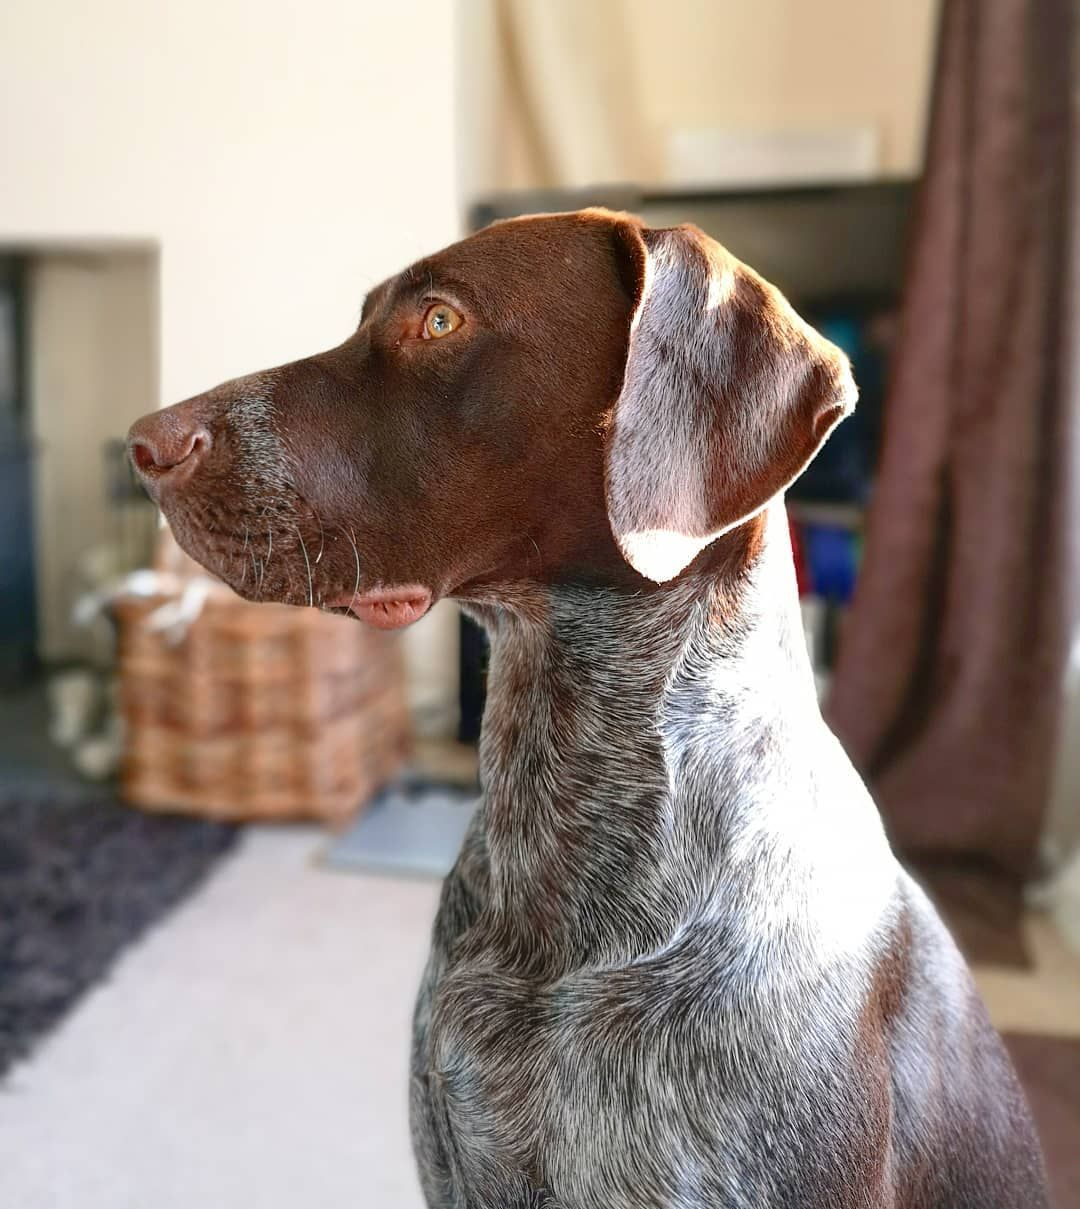 Watch the Best YouTube Videos Online -  So this morning I thought I'd pose in the sunshine whilst staring at a rabbit in the garden #PercyPointer . . . . . #rabbit #pose #posing #profile #sideprofile #growingup #handsome #someboy #birddog #birddoglife #gundog #gubdoglife #workingdog #workingdogcommunity #gsp #pointer #germanpointer #GermanShorthairedPointer #germanpointerofinstagram #gspoftheday #gspofinstagram #GspCommunity #puppy #puppyadventures #puppyspam #dogadevntures @gspoftheday #like #f